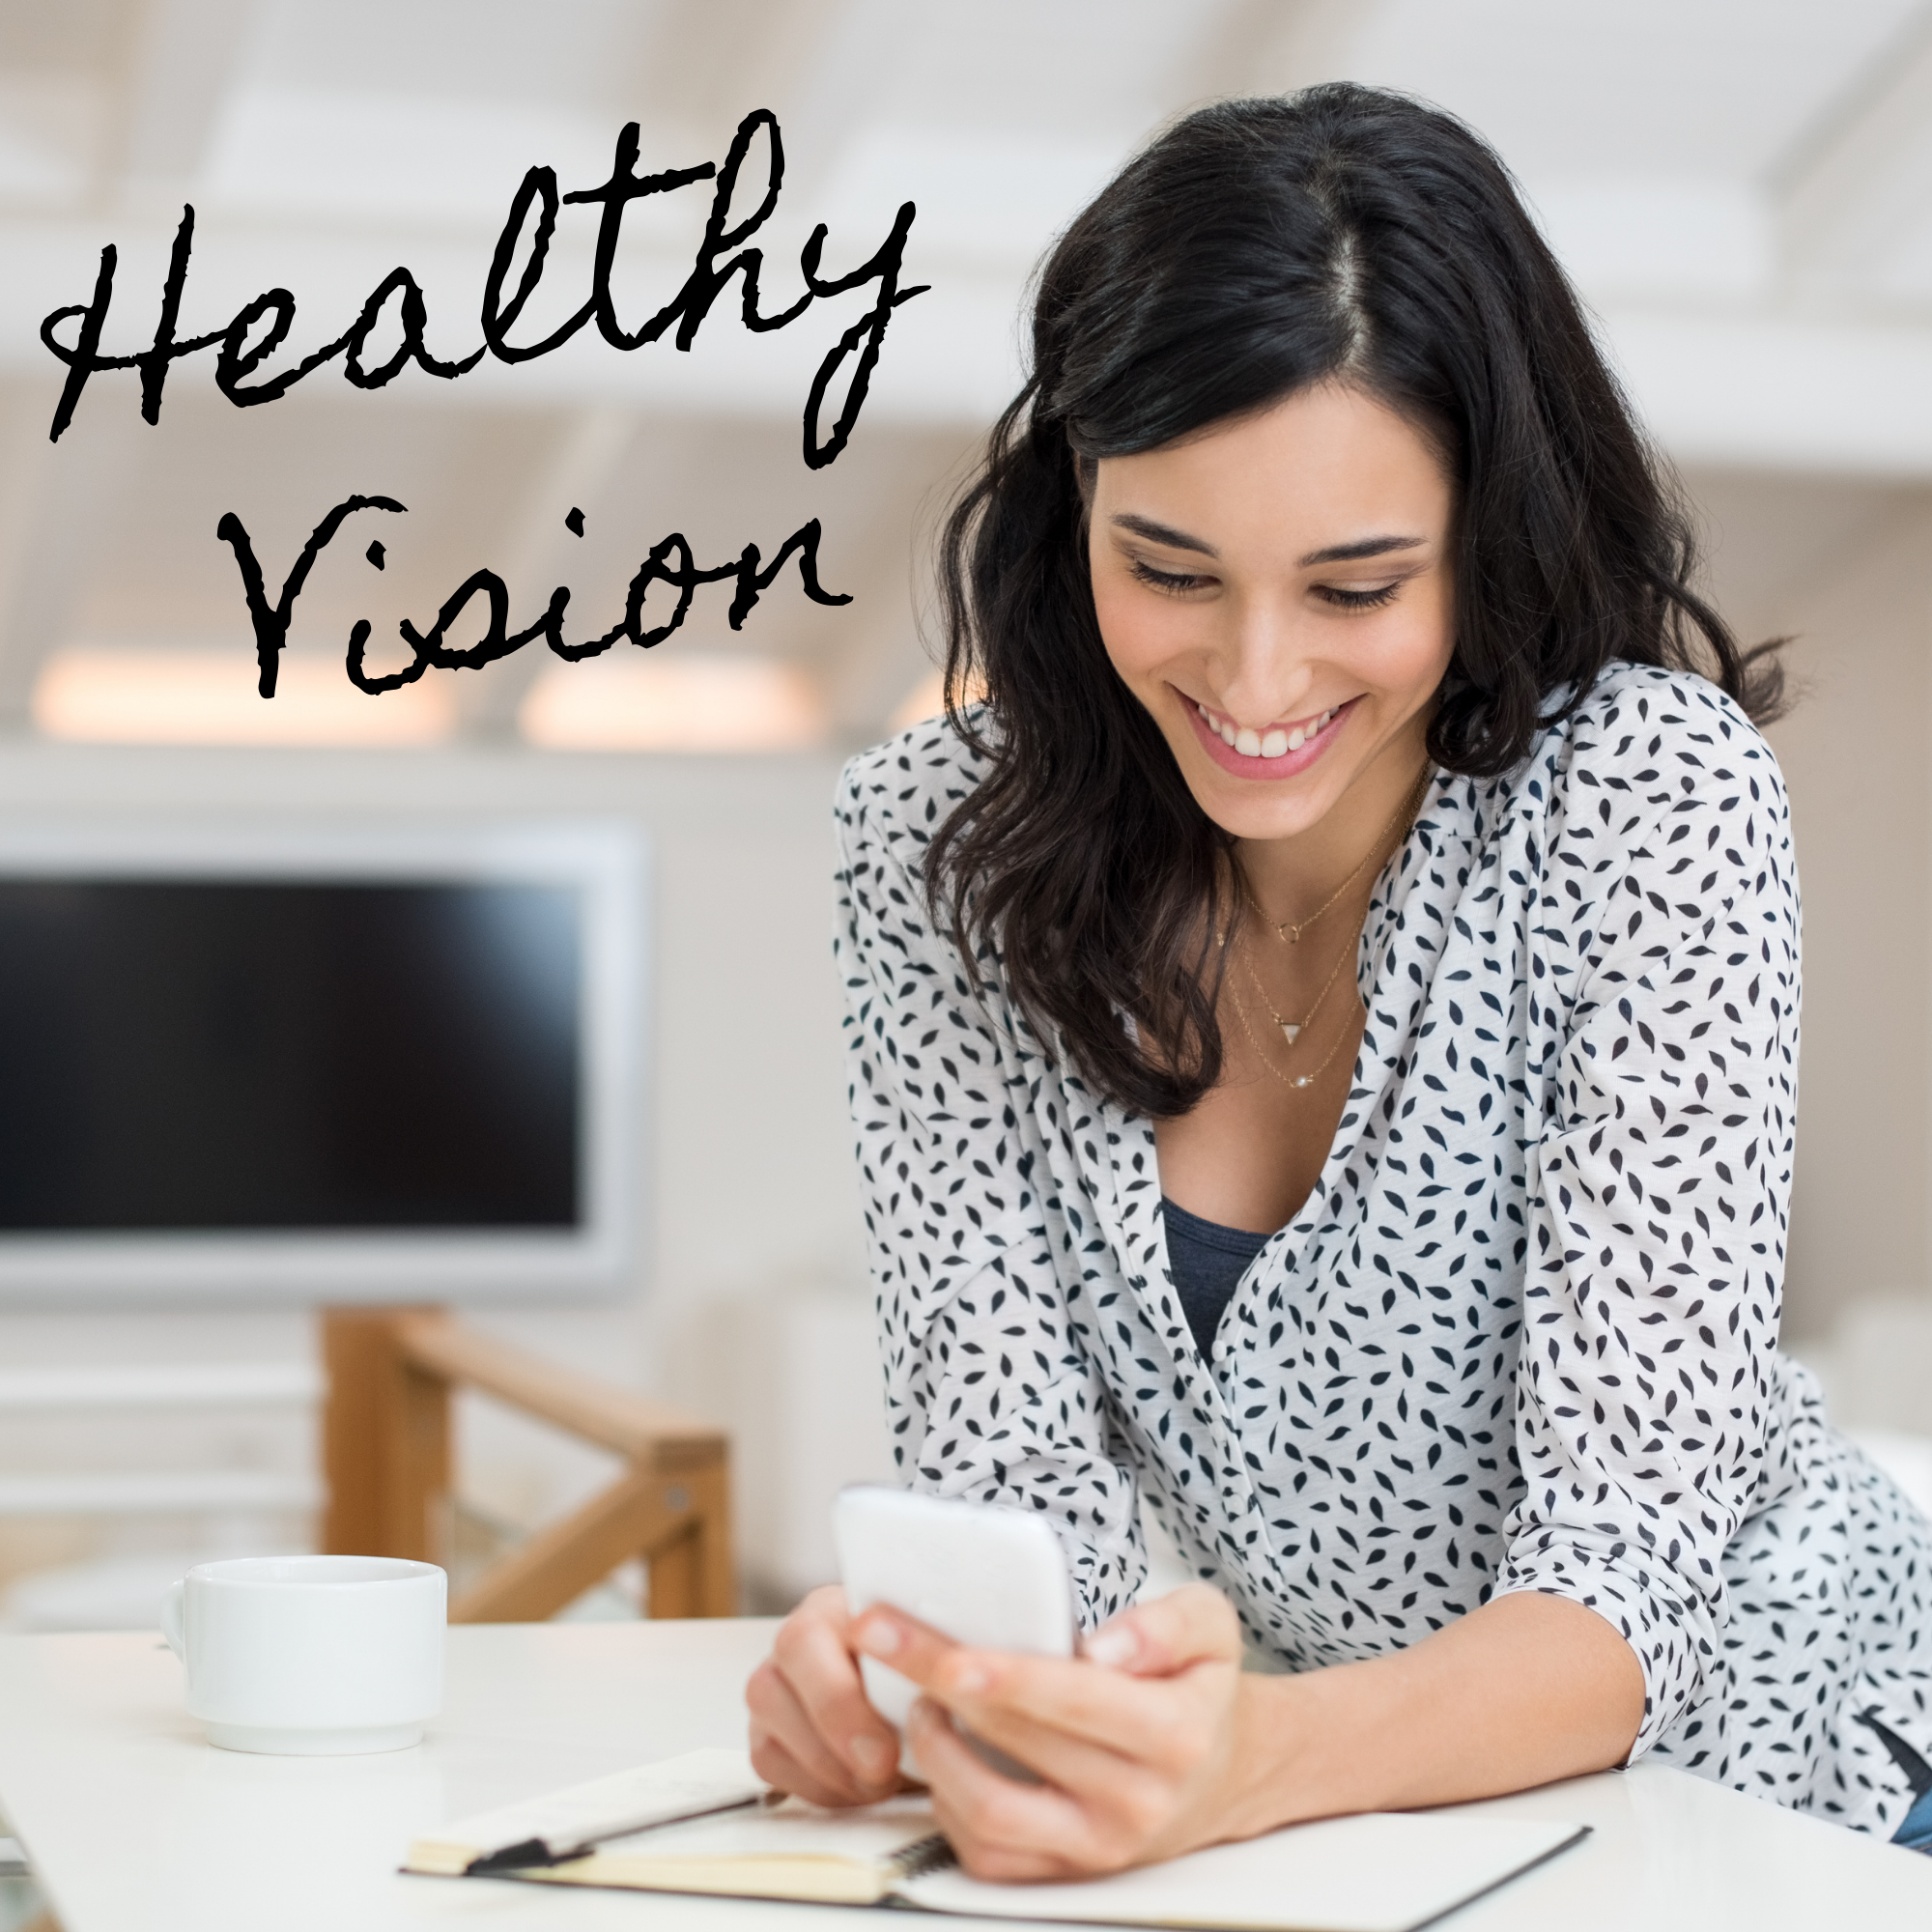 healthy vision calgary eye doctors optometrists dr penny hesla vision care therapy